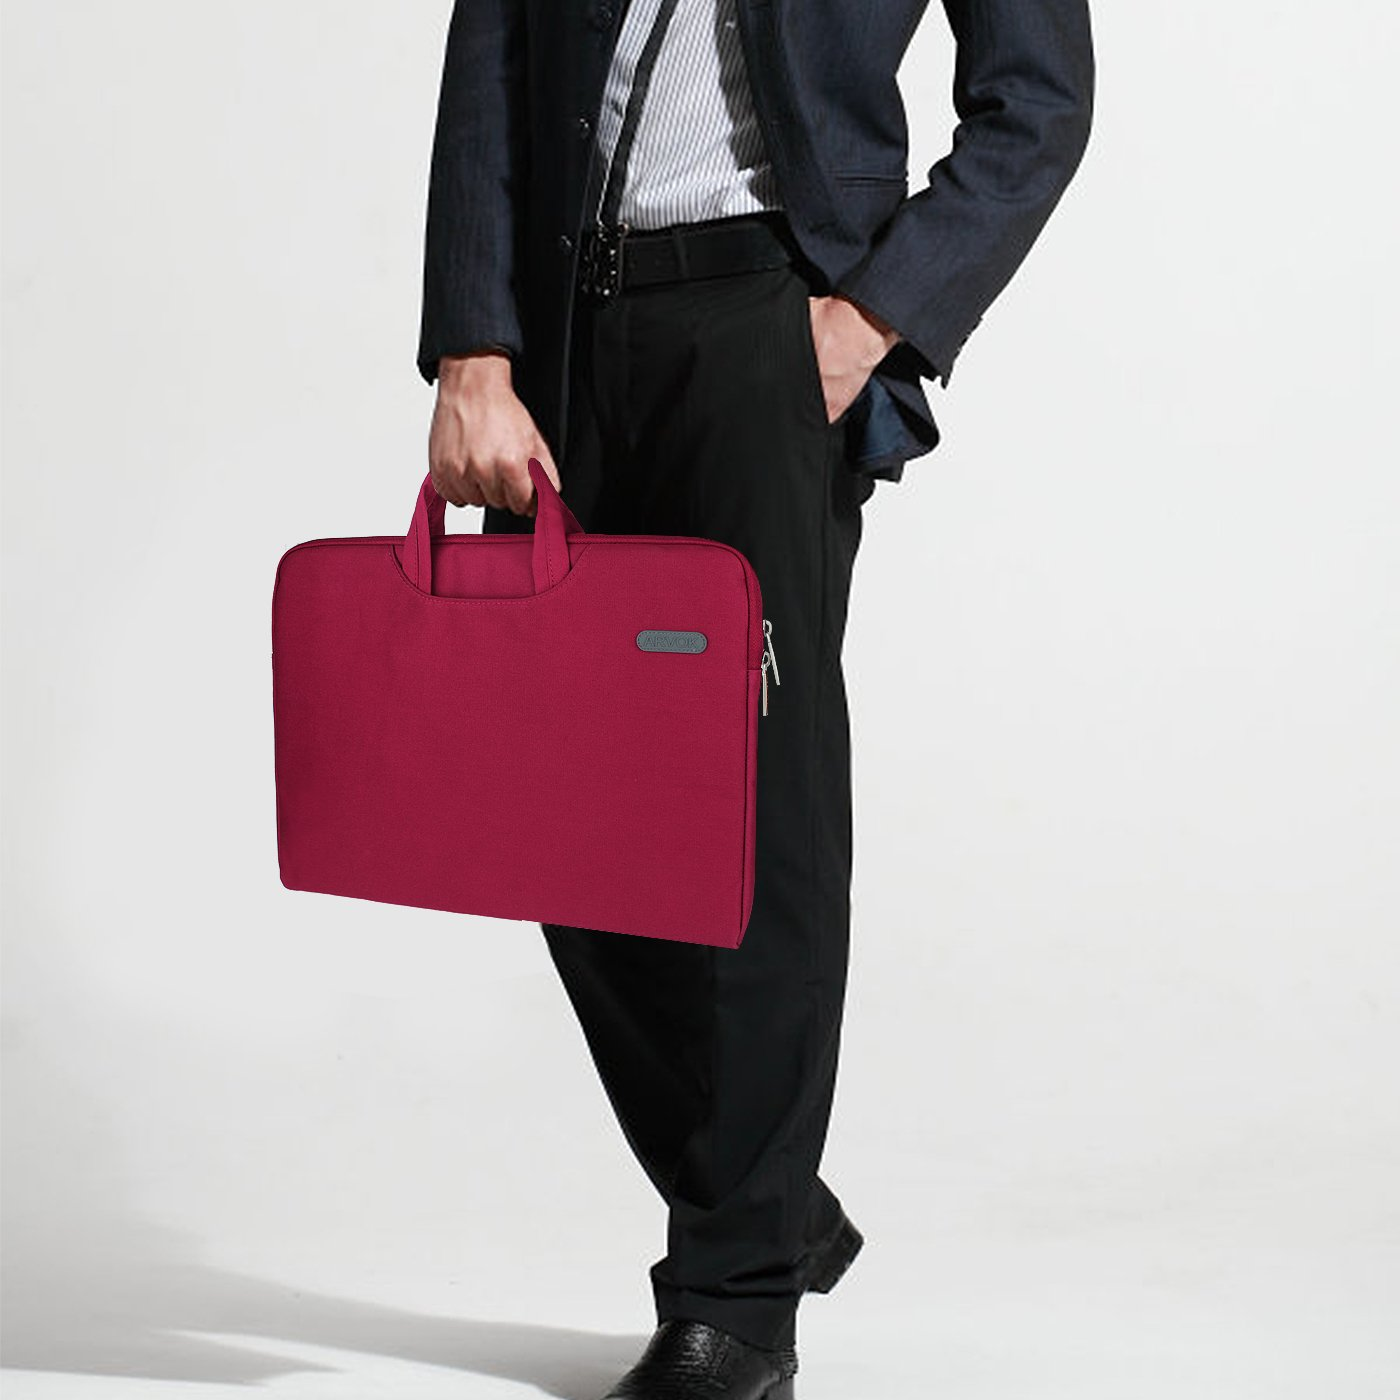 Arvok 15 15.6 16 Inch Water-resistant Canvas Fabric Laptop Sleeve With Handle&Zipper Pocket/Notebook Computer Case/Ultrabook Briefcase Carrying Bag/Pouch Cover For Acer/Asus/Dell/Lenovo/HP,Wine Red by ARVOK (Image #2)